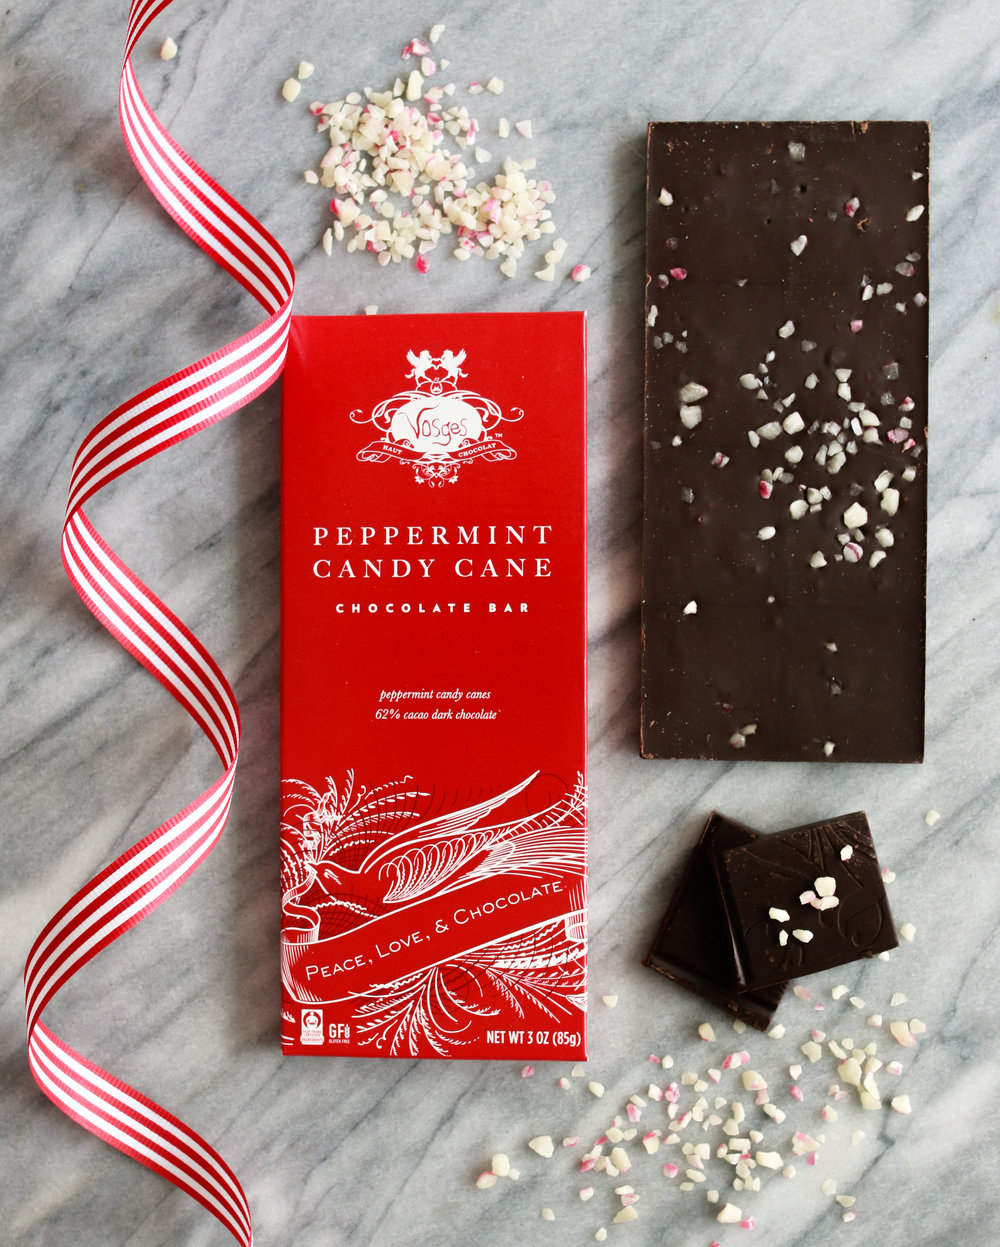 vosges peppermint candy cane bar